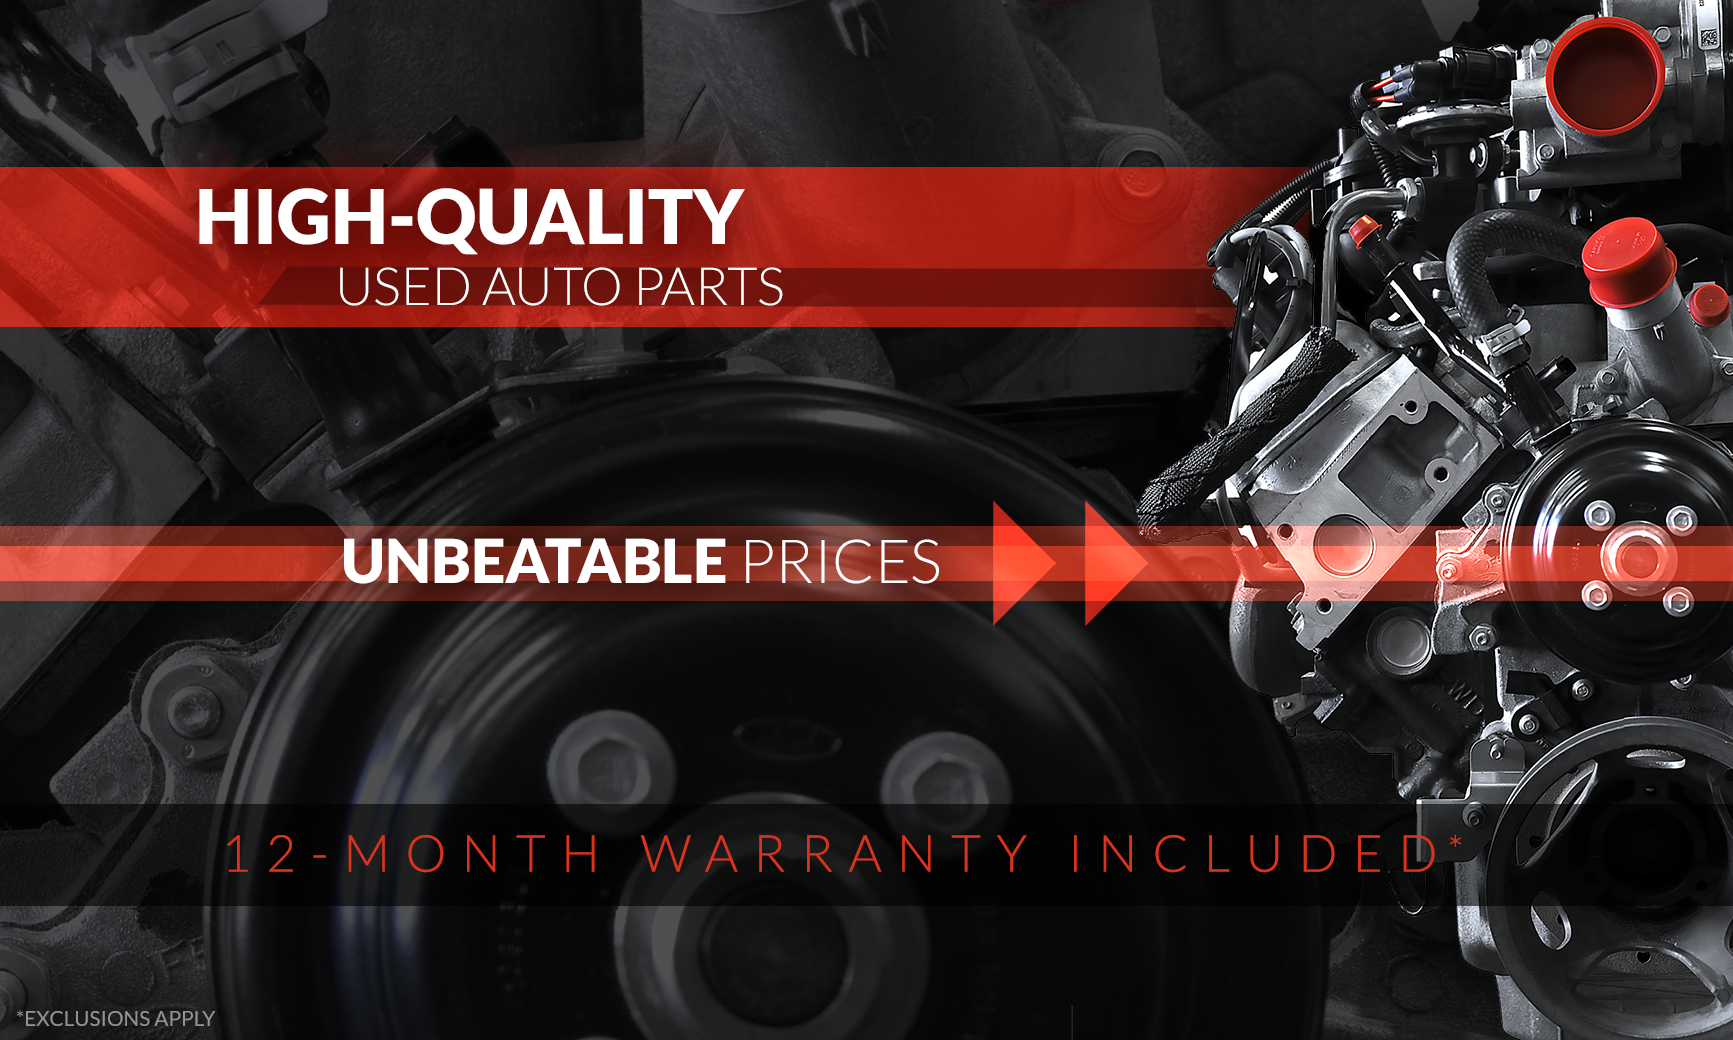 High-Quality Used Auto Parts at Unbeatable Prices - 12-Month Warranty Included (Exclusions Apply)